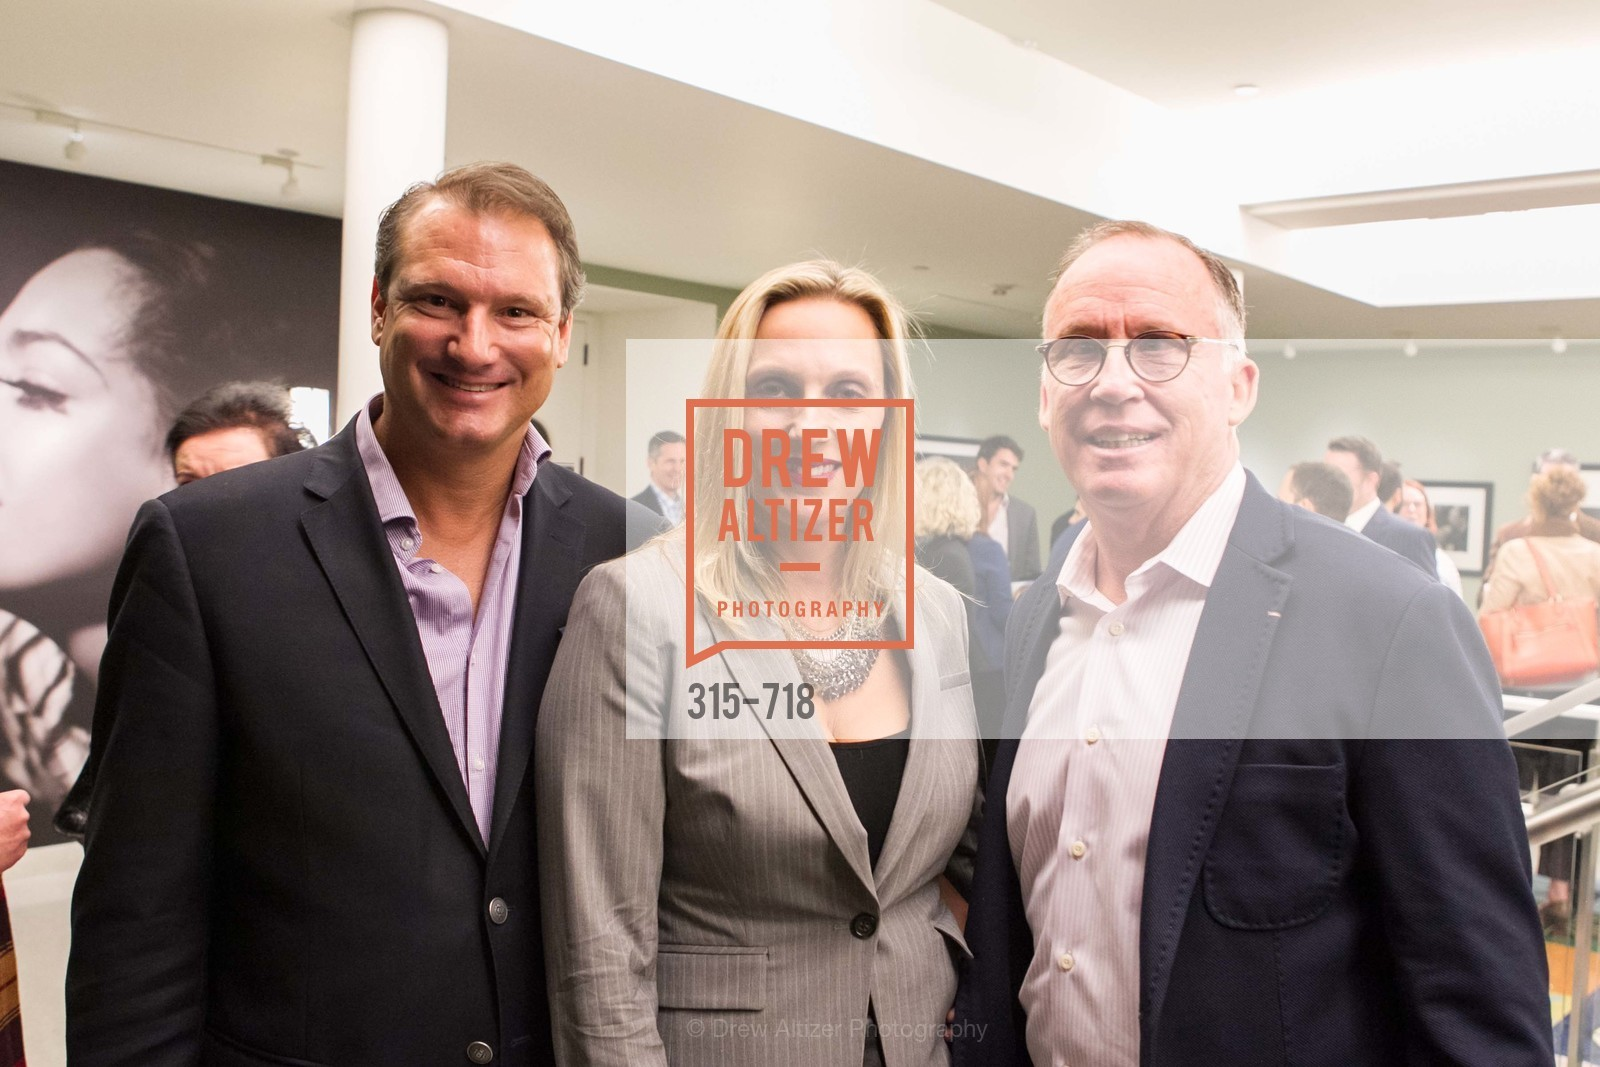 Joseph Lucier, Stacy Caen, DJ Grubb, ICAA Hosts NICKY HASLAM'S Lecture and Book Signing, US, May 11th, 2015,Drew Altizer, Drew Altizer Photography, full-service agency, private events, San Francisco photographer, photographer california